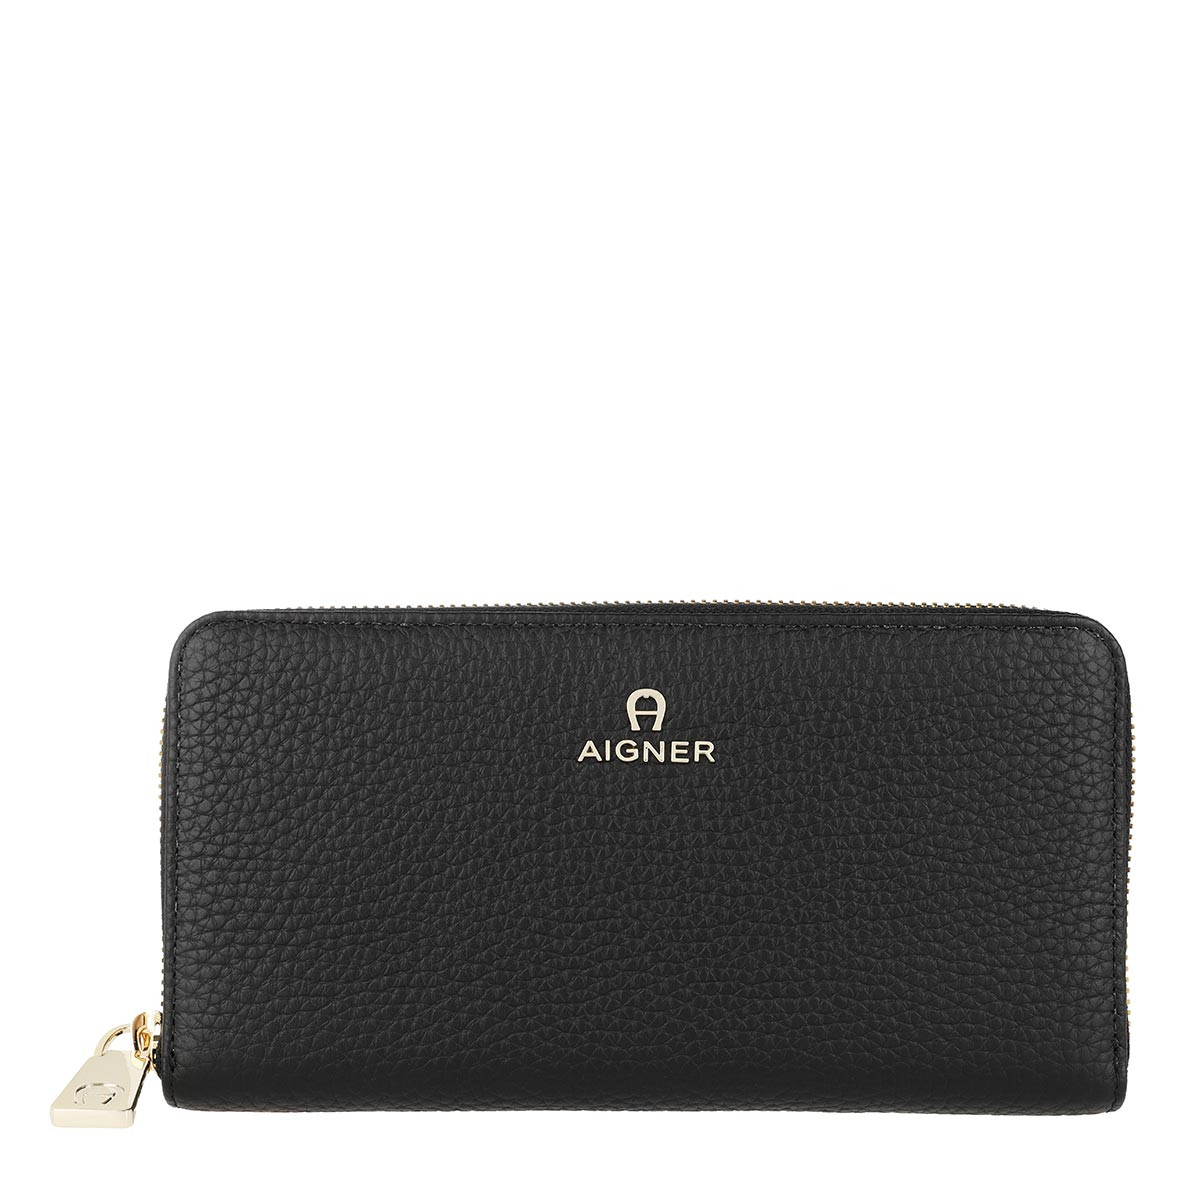 Aigner Portemonnaie - Ivy Long Wallet Black - in schwarz - für Damen